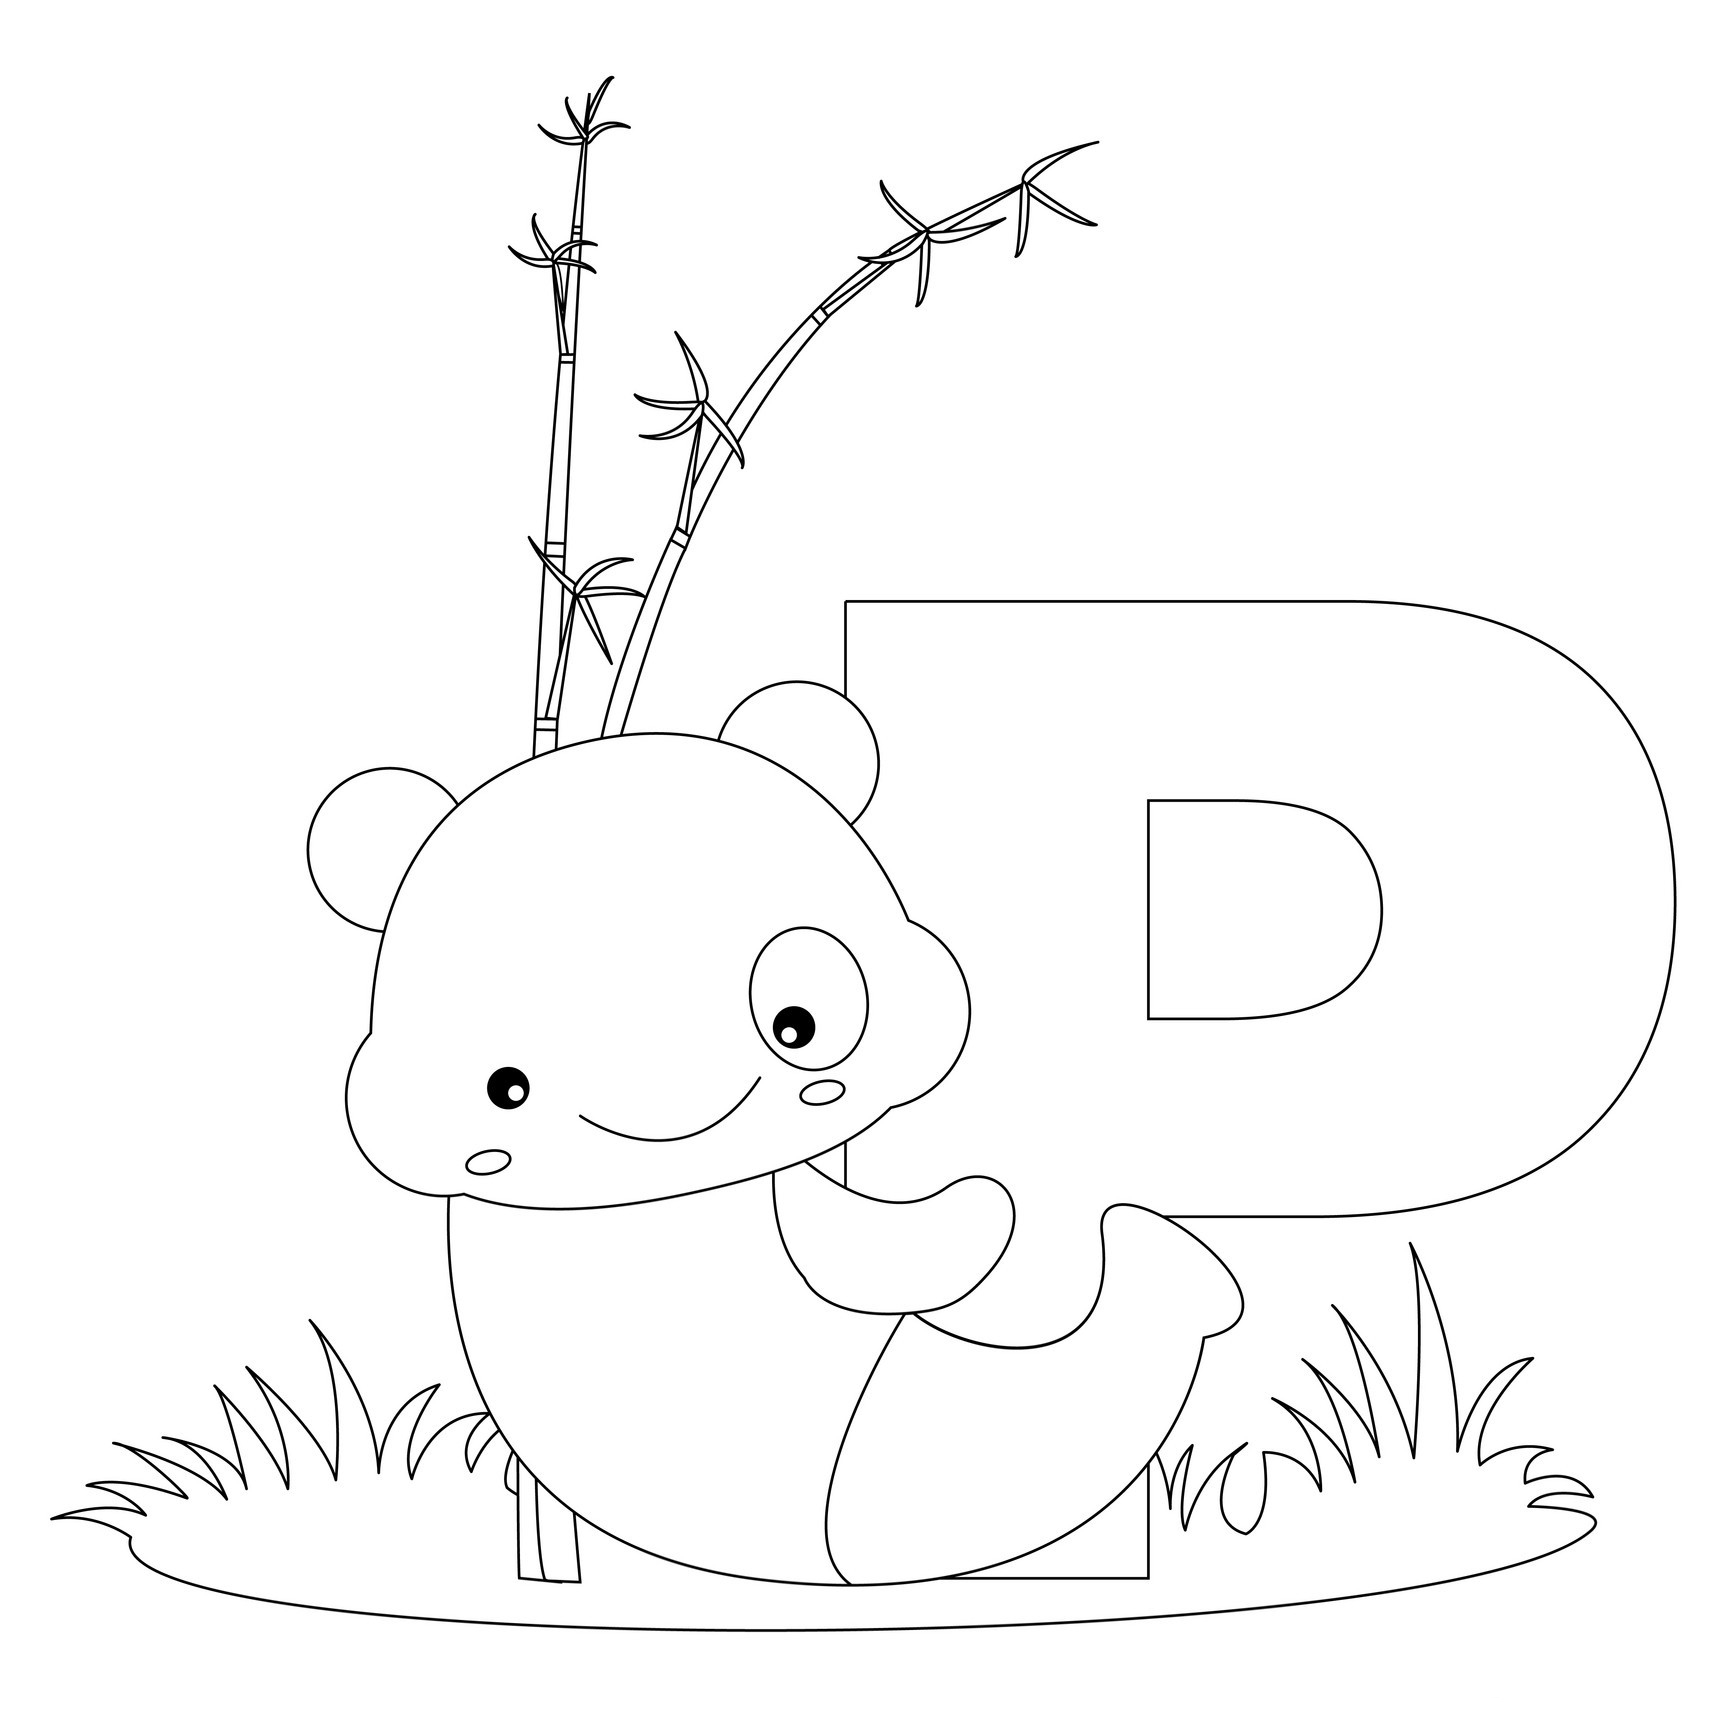 Animal Alphabet Coloring Pages Printable : Free printable alphabet coloring pages for kids best